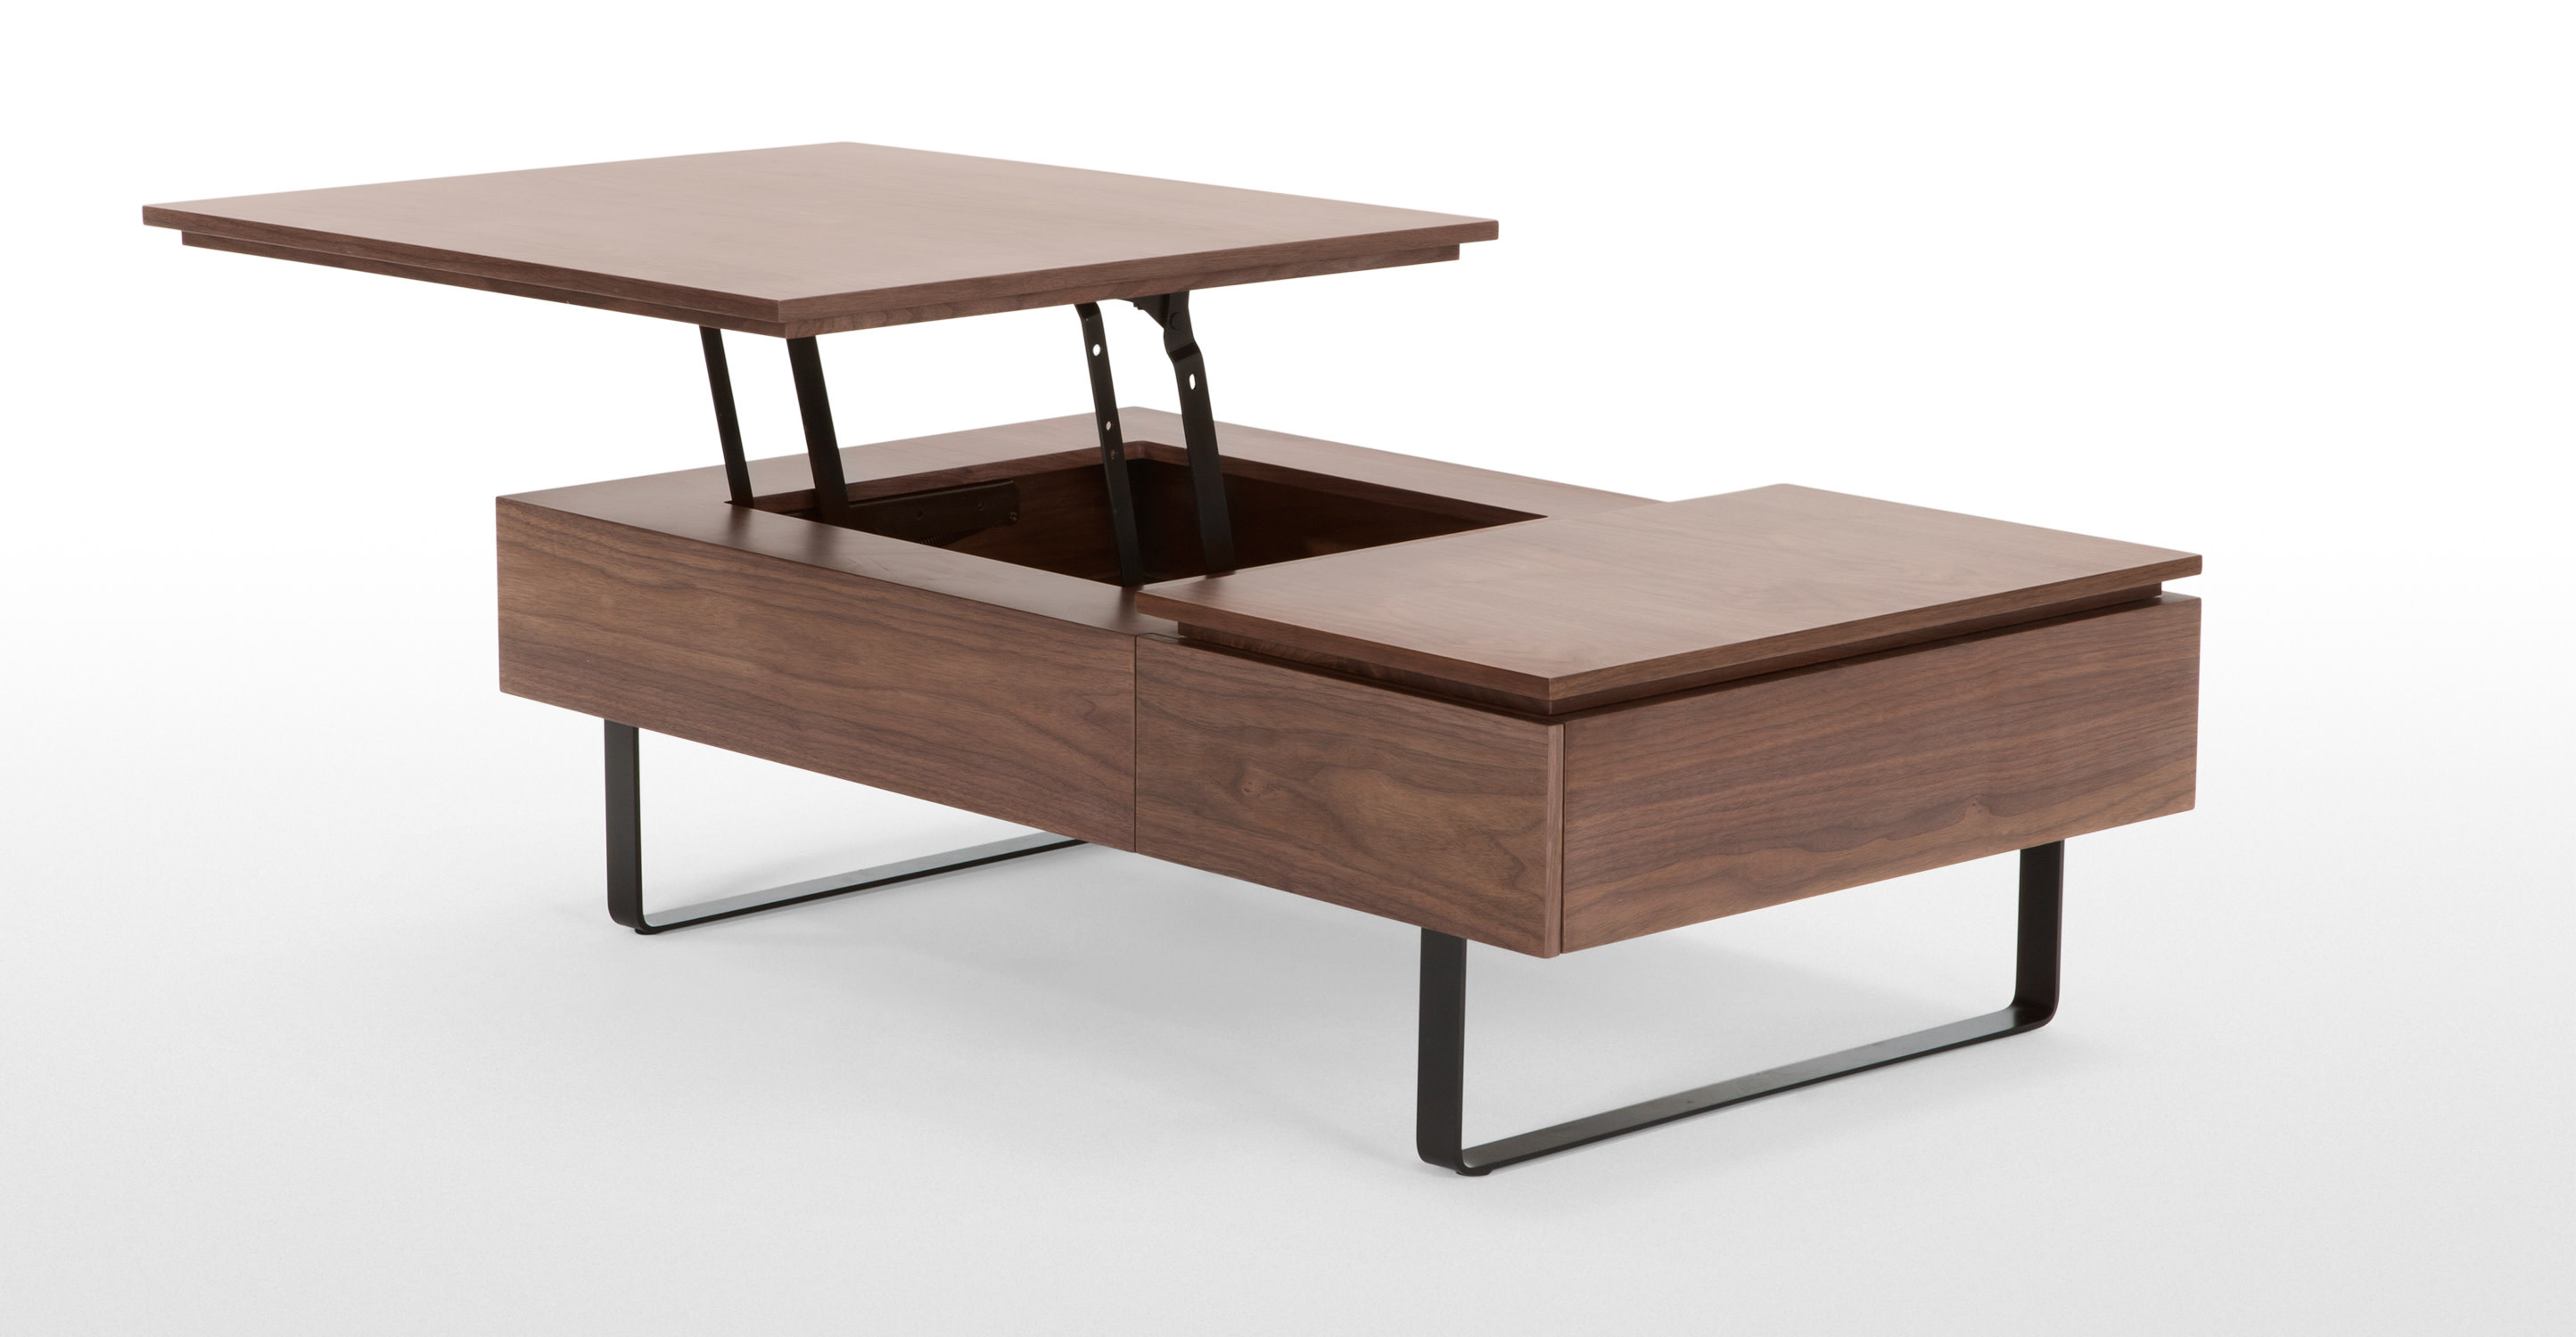 Best ideas about Coffee Tables With Storage . Save or Pin Flippa Functional Coffee Table with Storage Walnut Now.